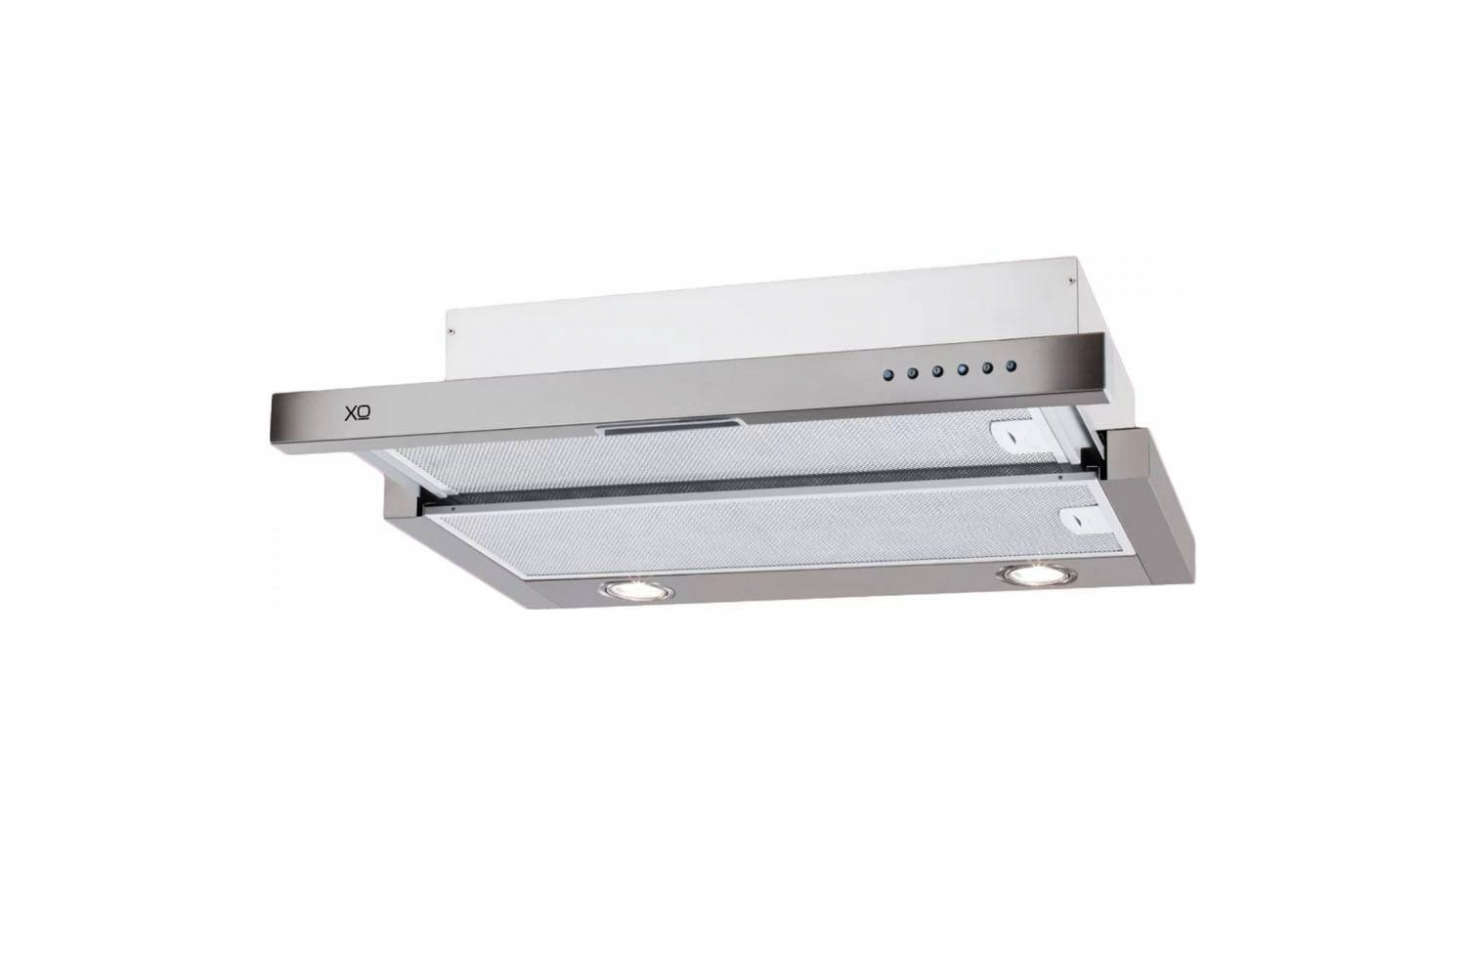 TheXO Under Cabinet Glide-Out Range Hood is $599 for the 30-inch model and $649 for the 36-inch model at AJ Madison.